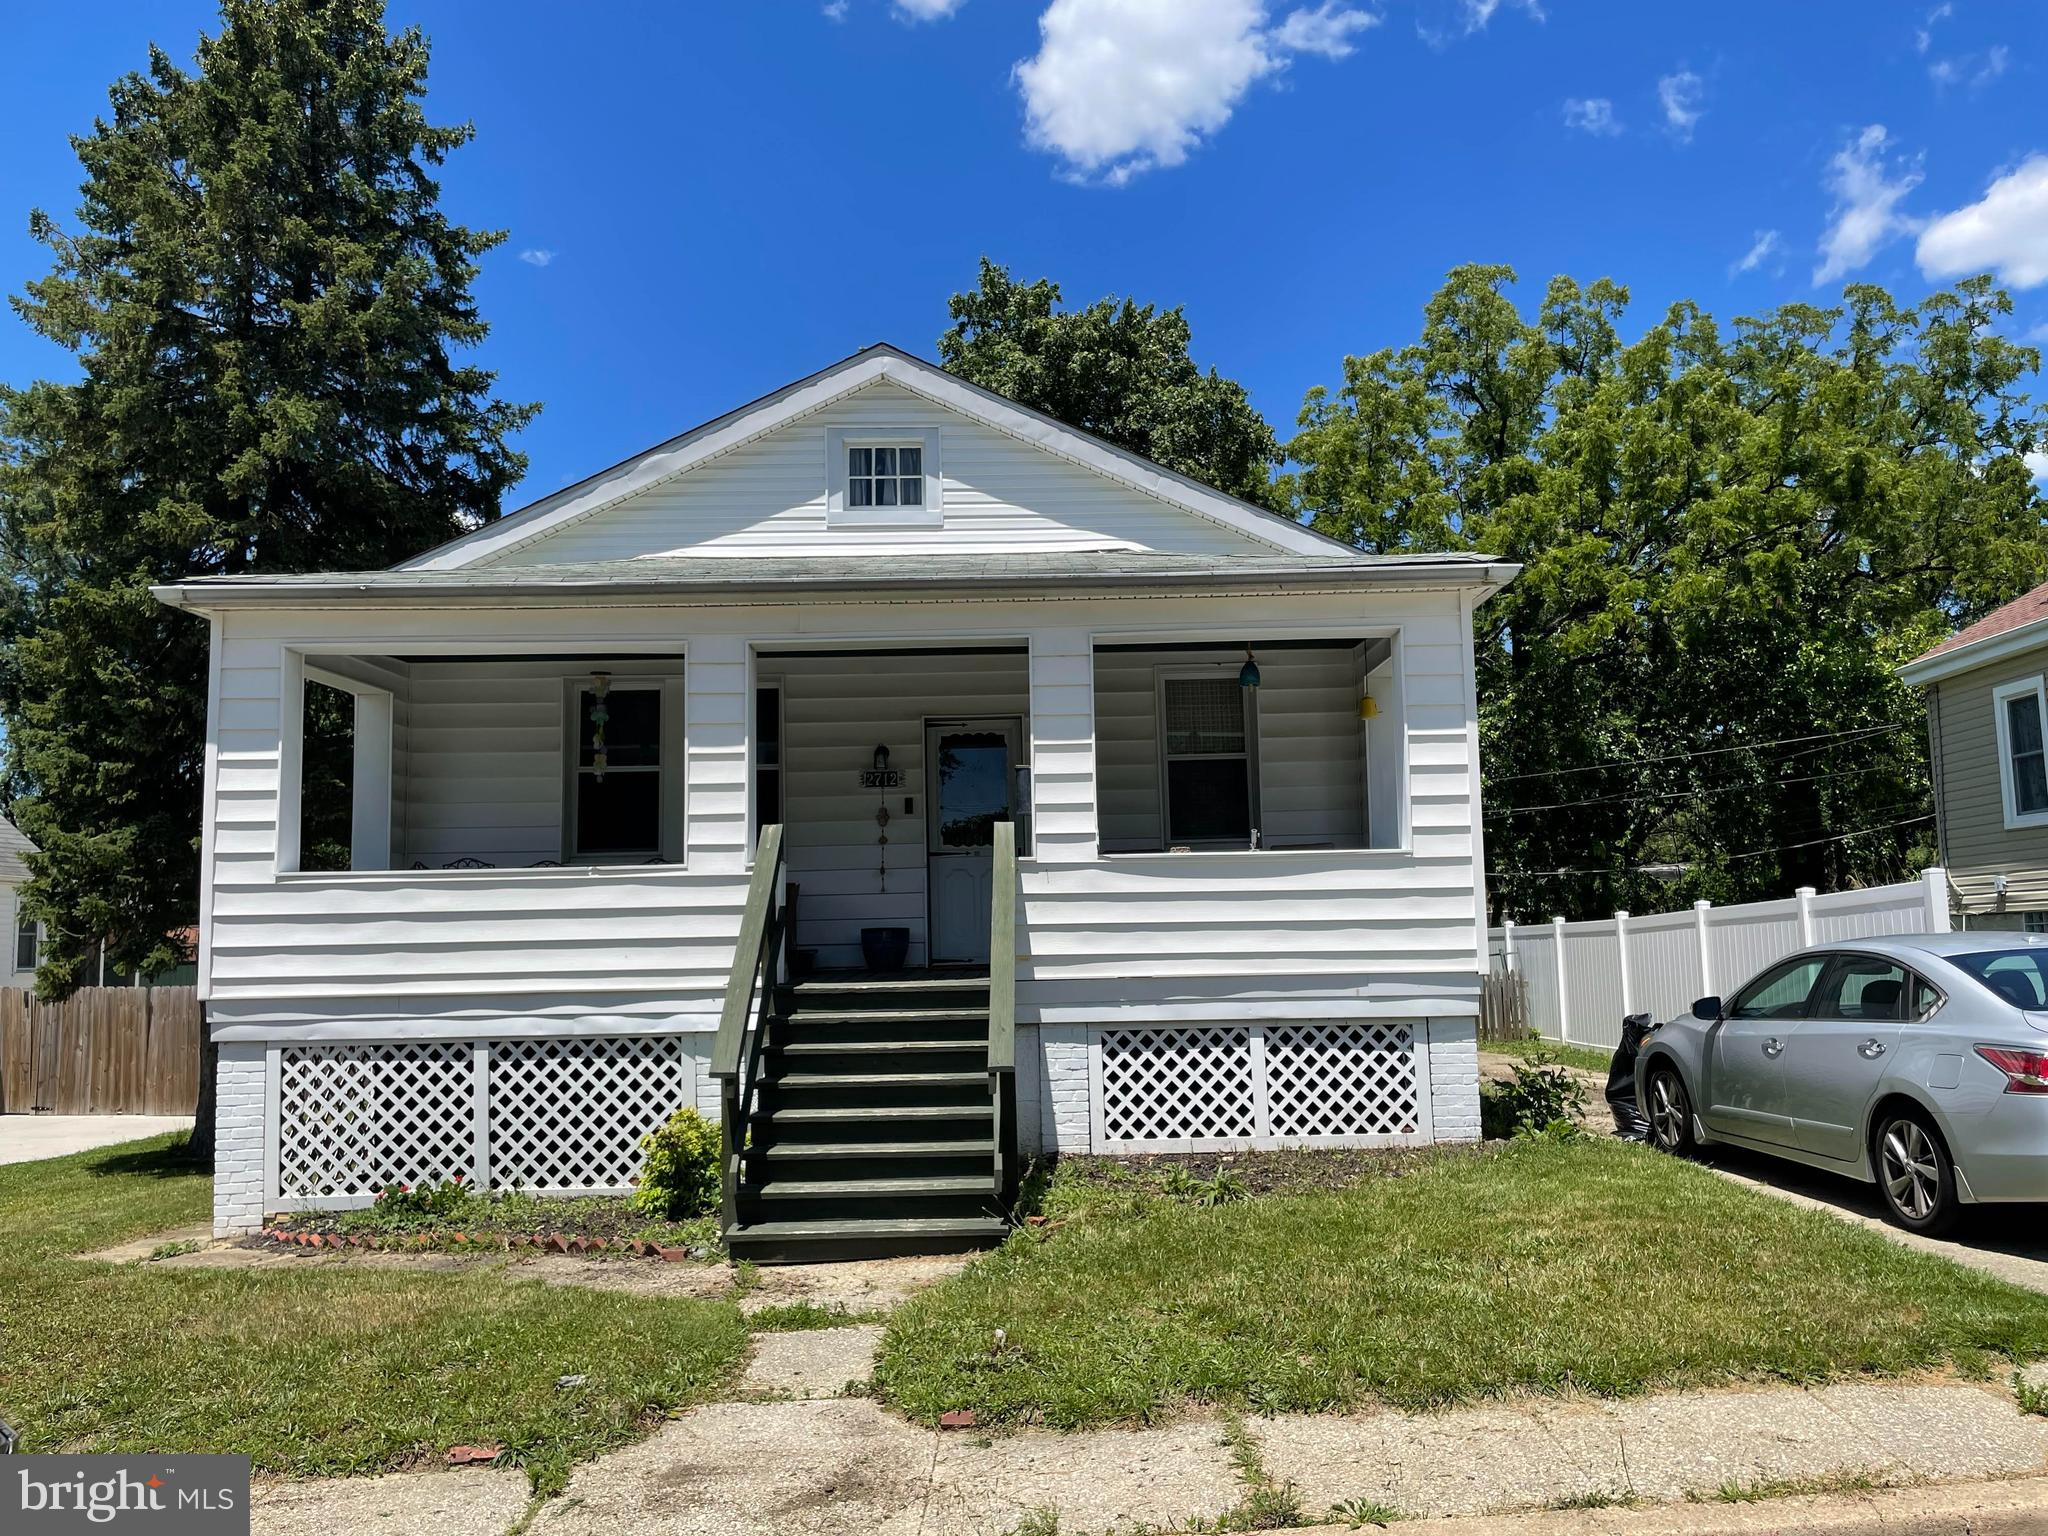 Come see this well maintained bungalow with level back yard and off street parking. This will not last at this price.